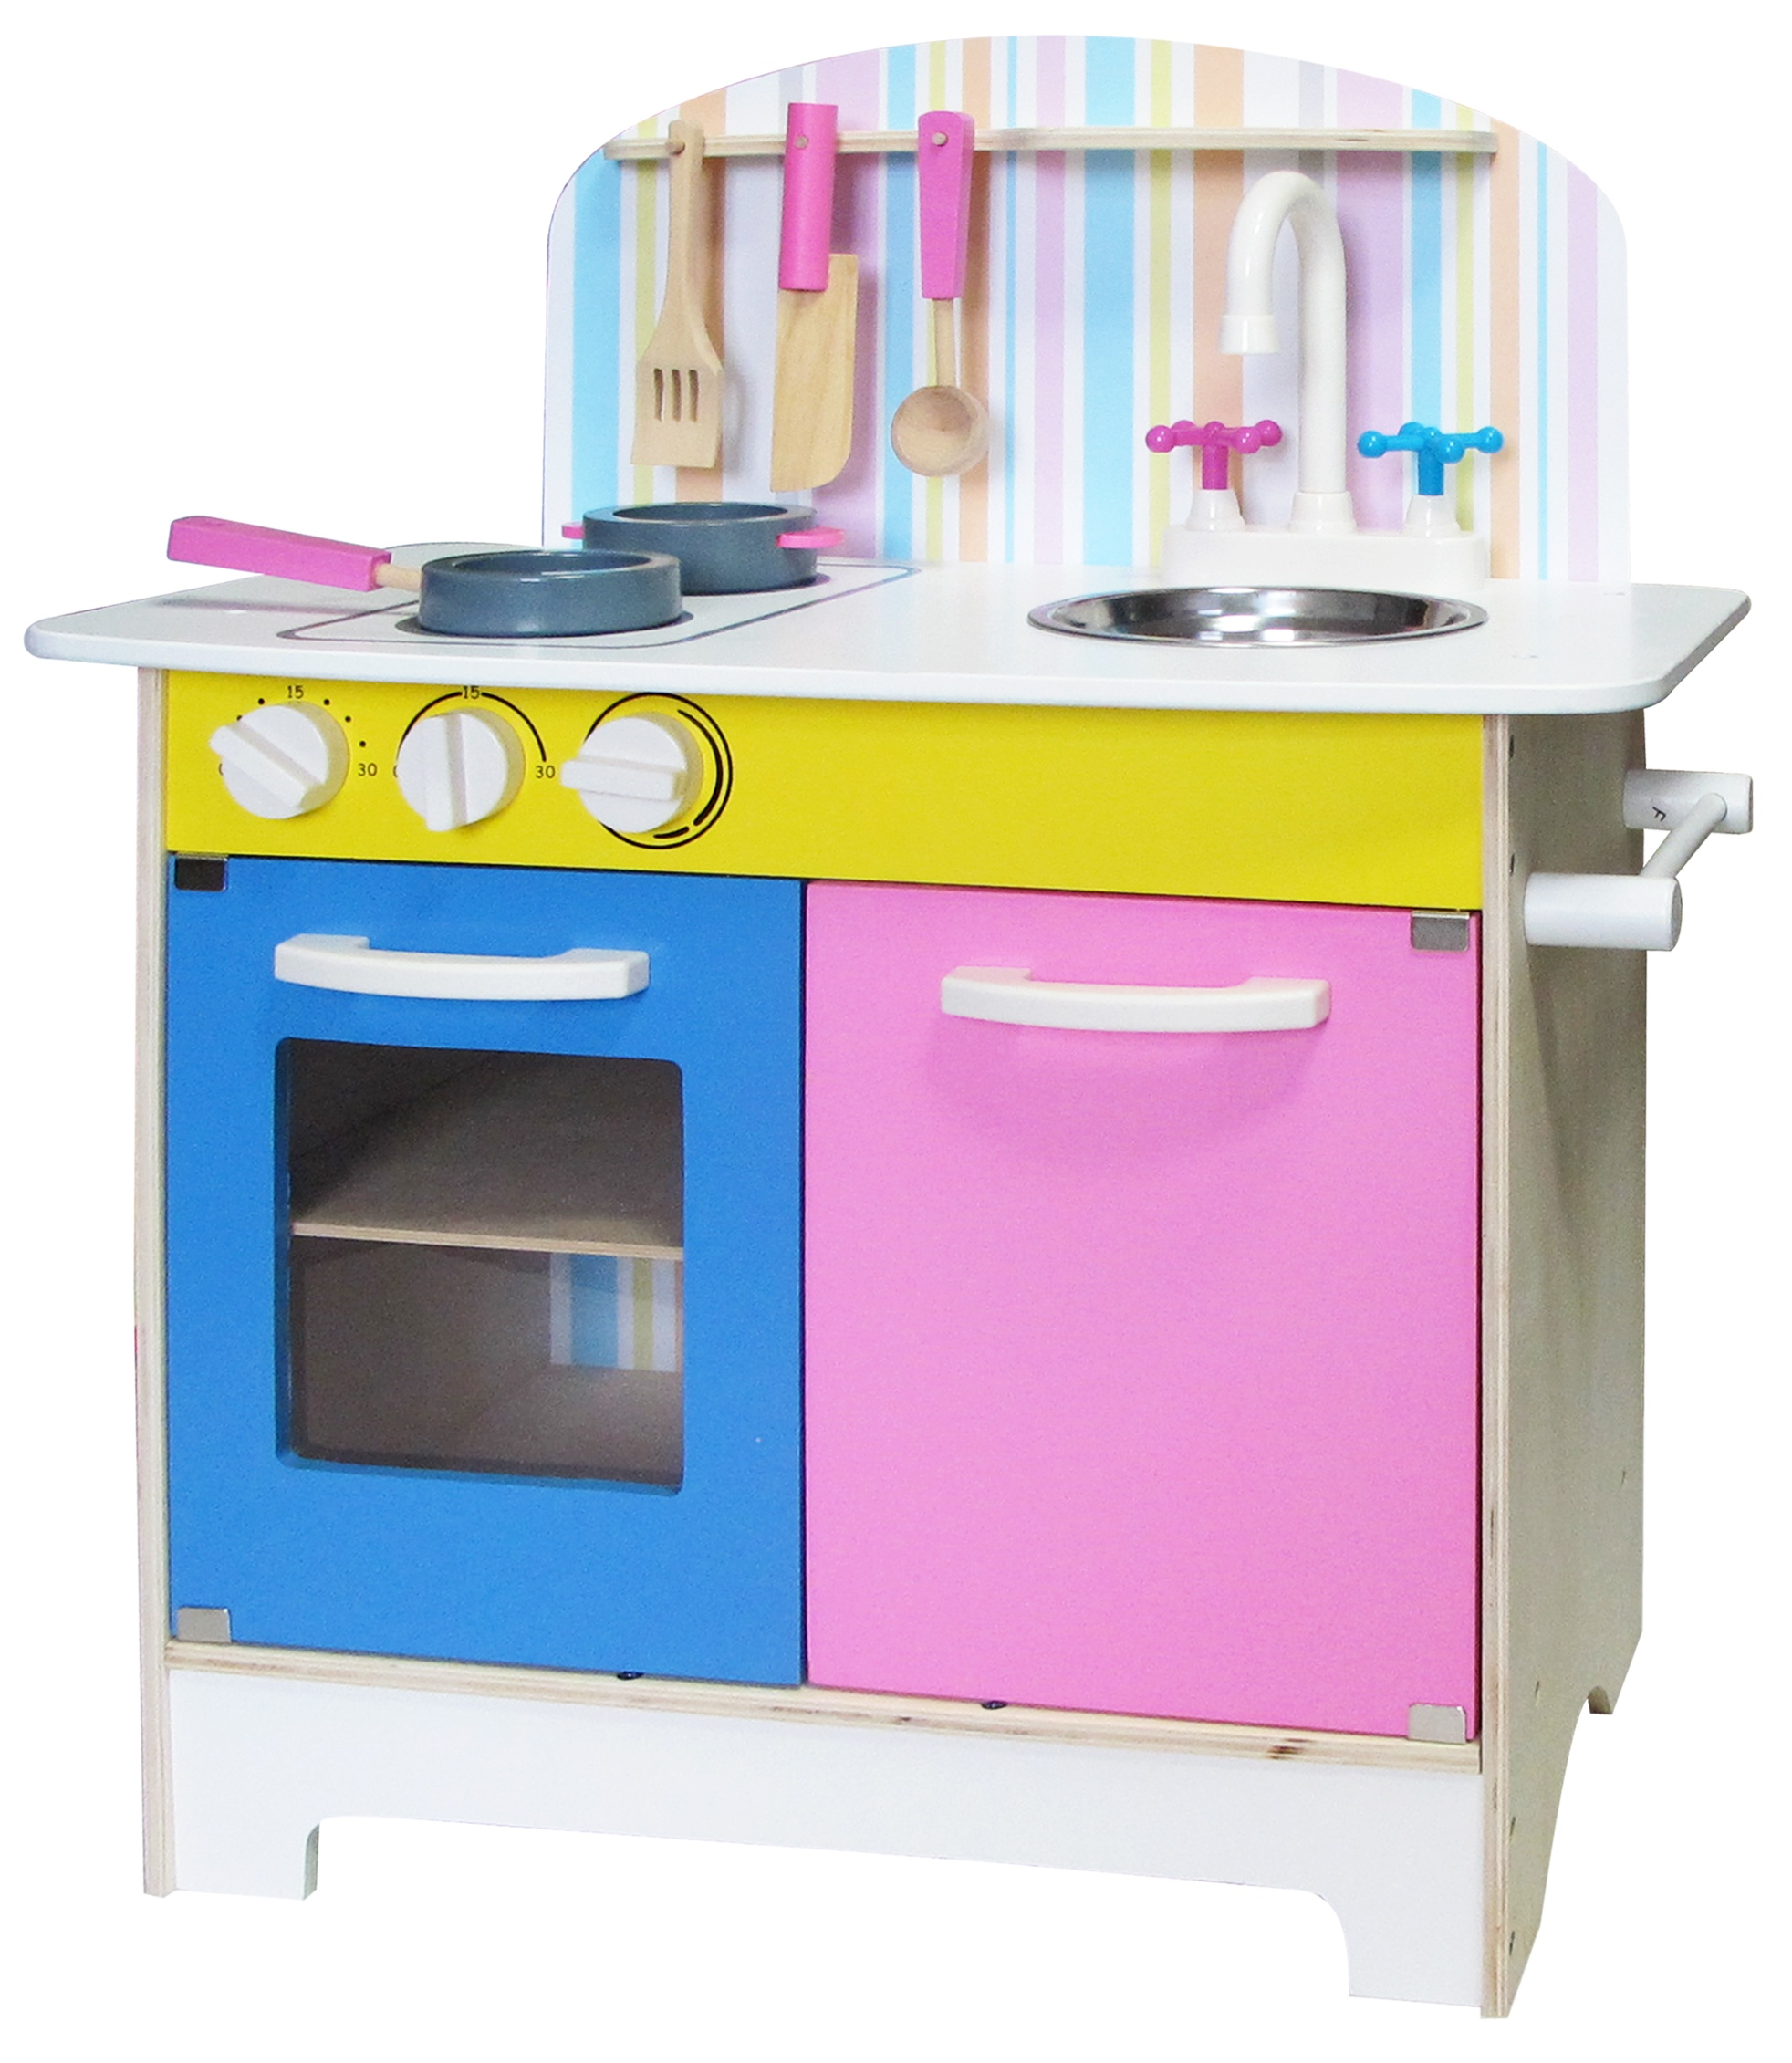 b58fcf1e9dfe Details about Kids 25pc Wooden Kitchen Set Role Play Toys Cooking Chef  Educational Gift Box